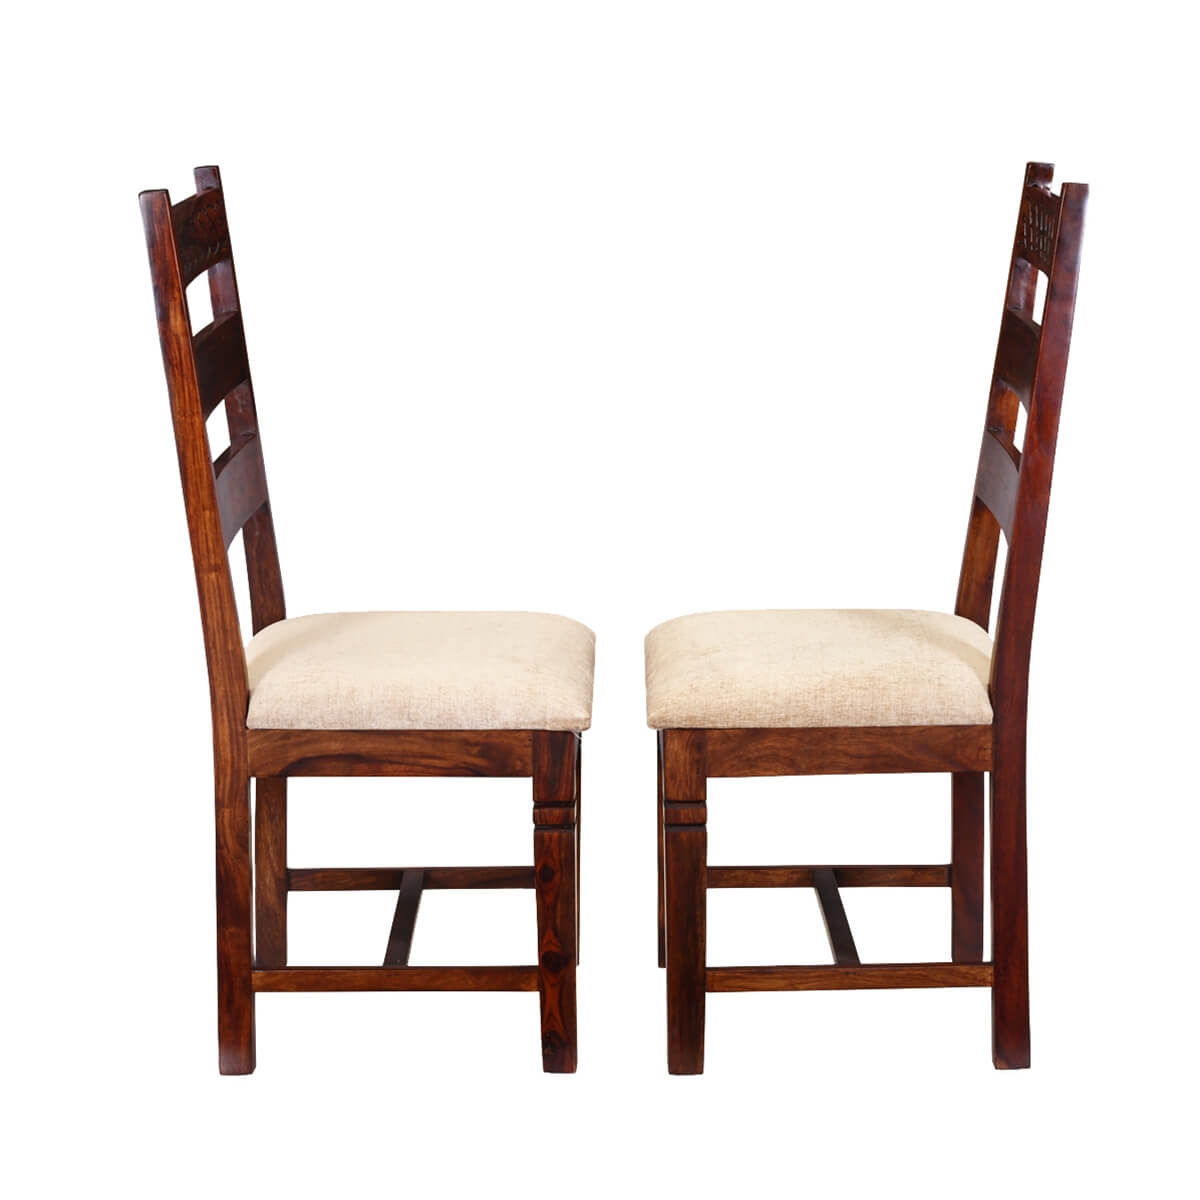 unfinished ladder back chairs teen girl desk chair handcrafted solid wood 2pc upholstered